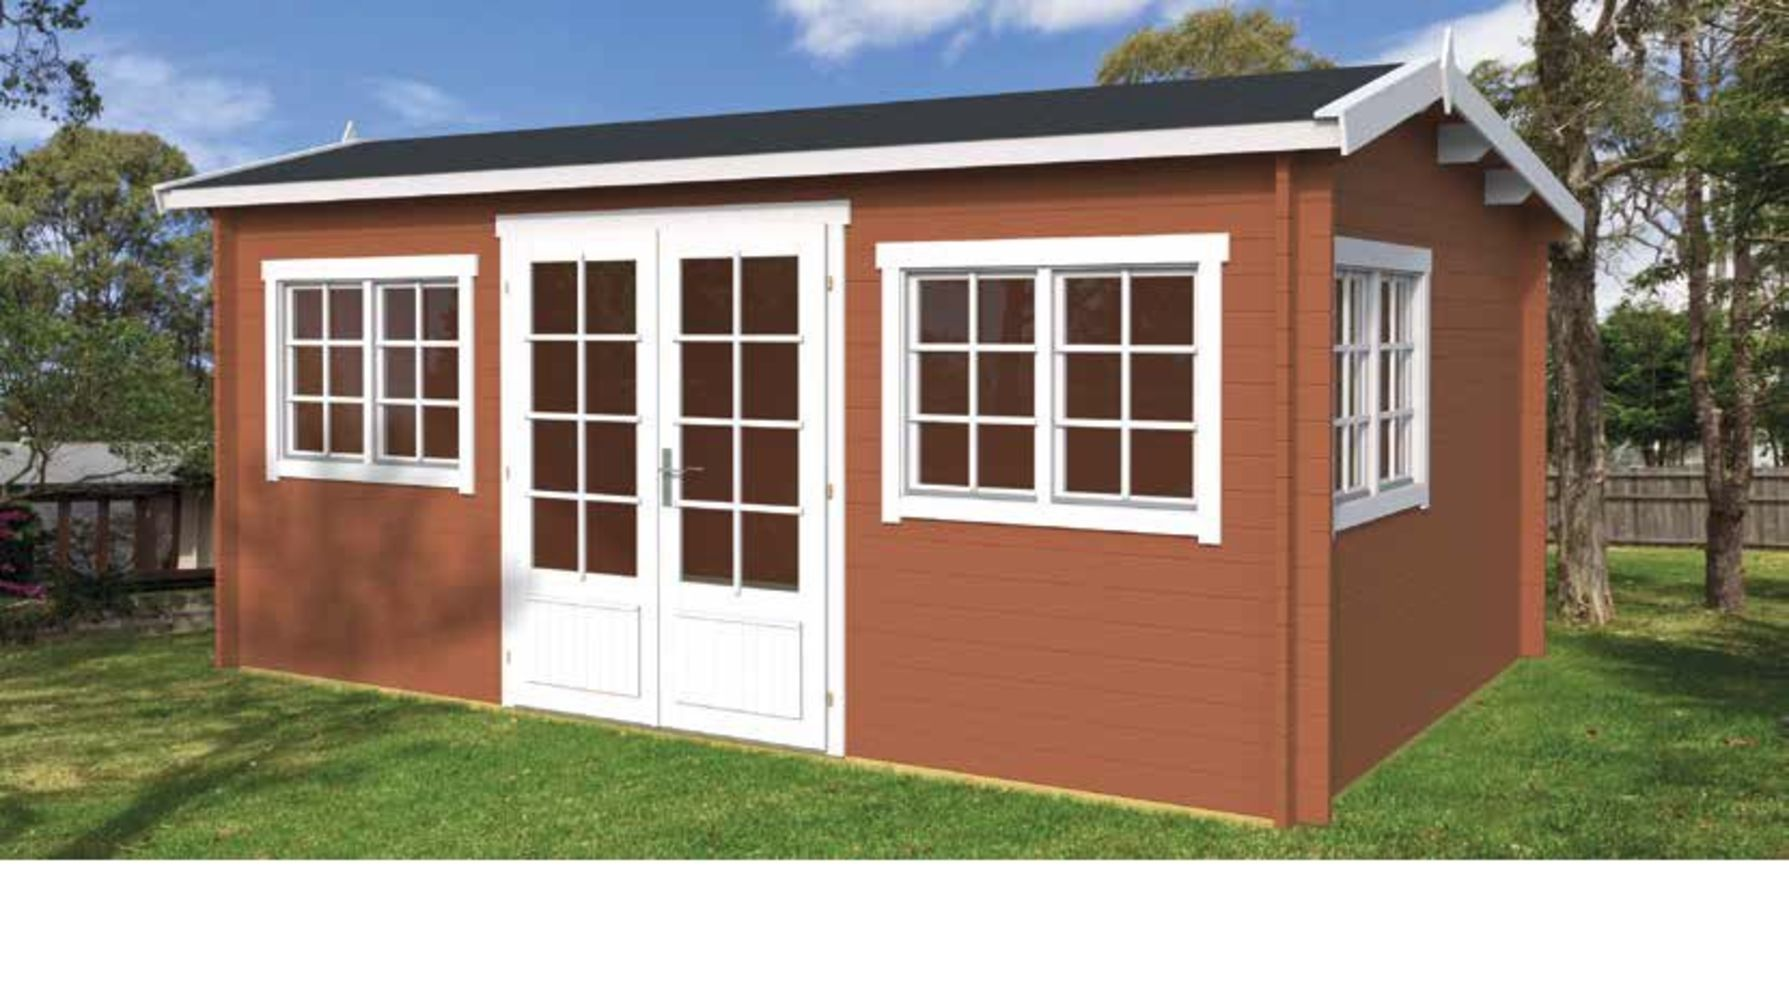 NEW RANGE! Luxury Log Cabins, BBQ Grill Cabins, Home Saunas, Hot Tubs, Brand New Rattan Furniture & Gas Patio Heaters From The Chelsea Garden Co